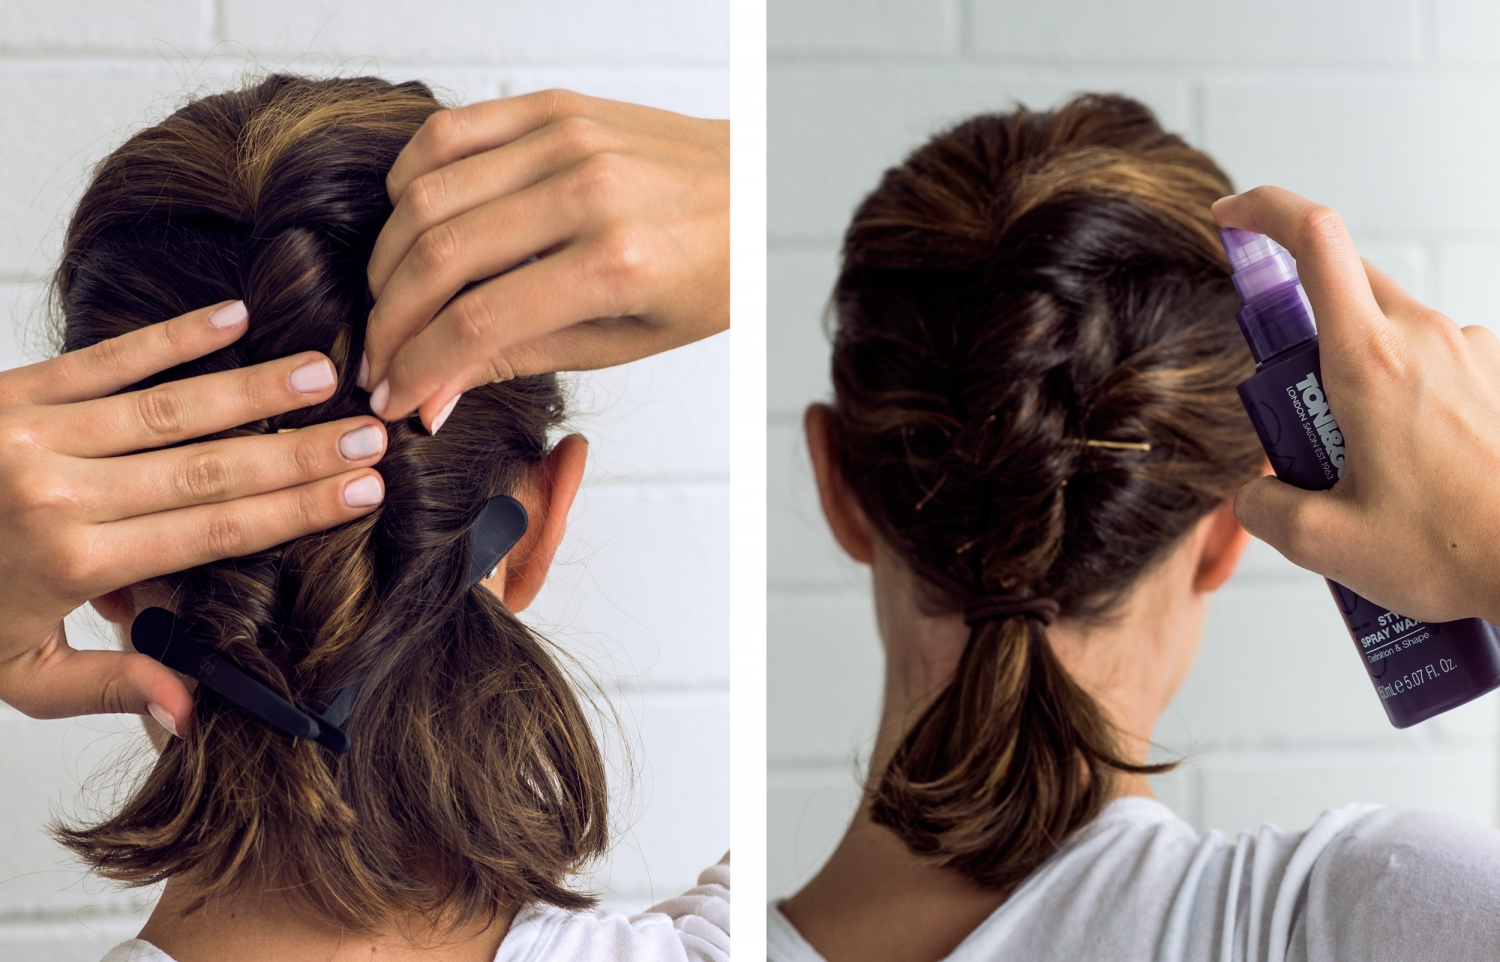 toni-and-guy-hair-how-to---step-7